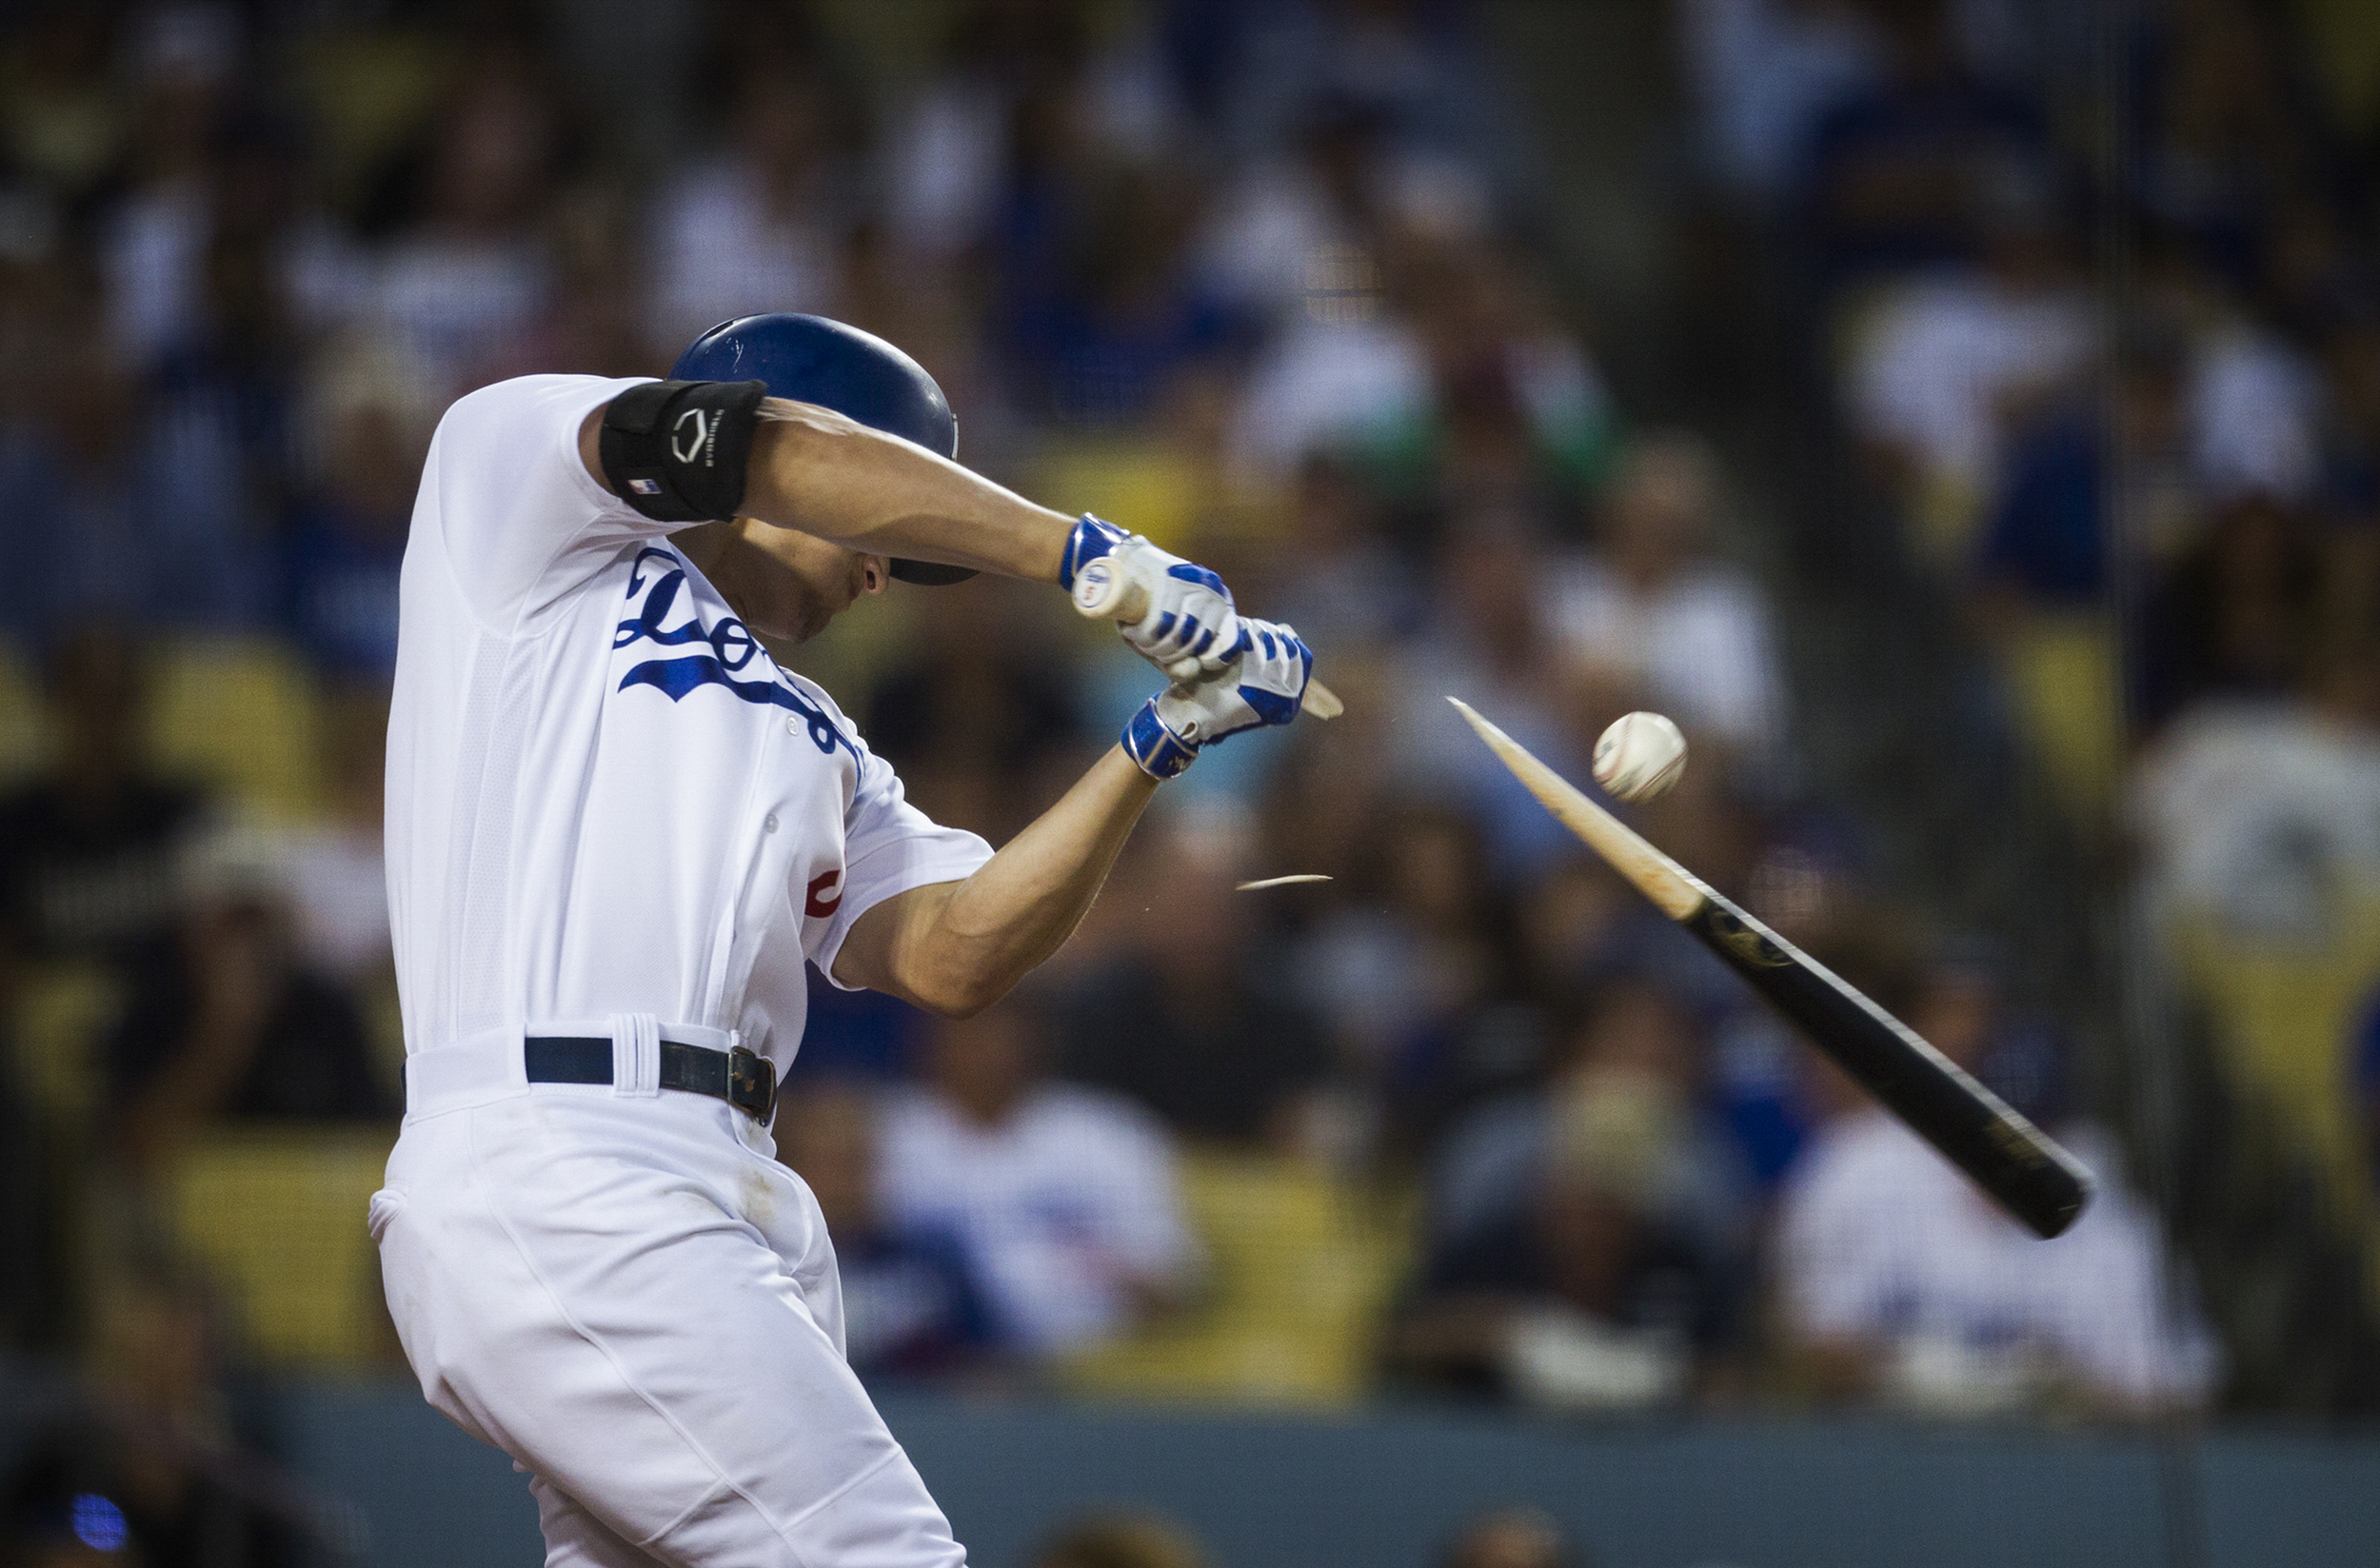 Los Angeles Dodgers Corey Seager breaks his bat in the third inning while batting against the Arizona Diamondbacks on Friday, July 29, 2016.